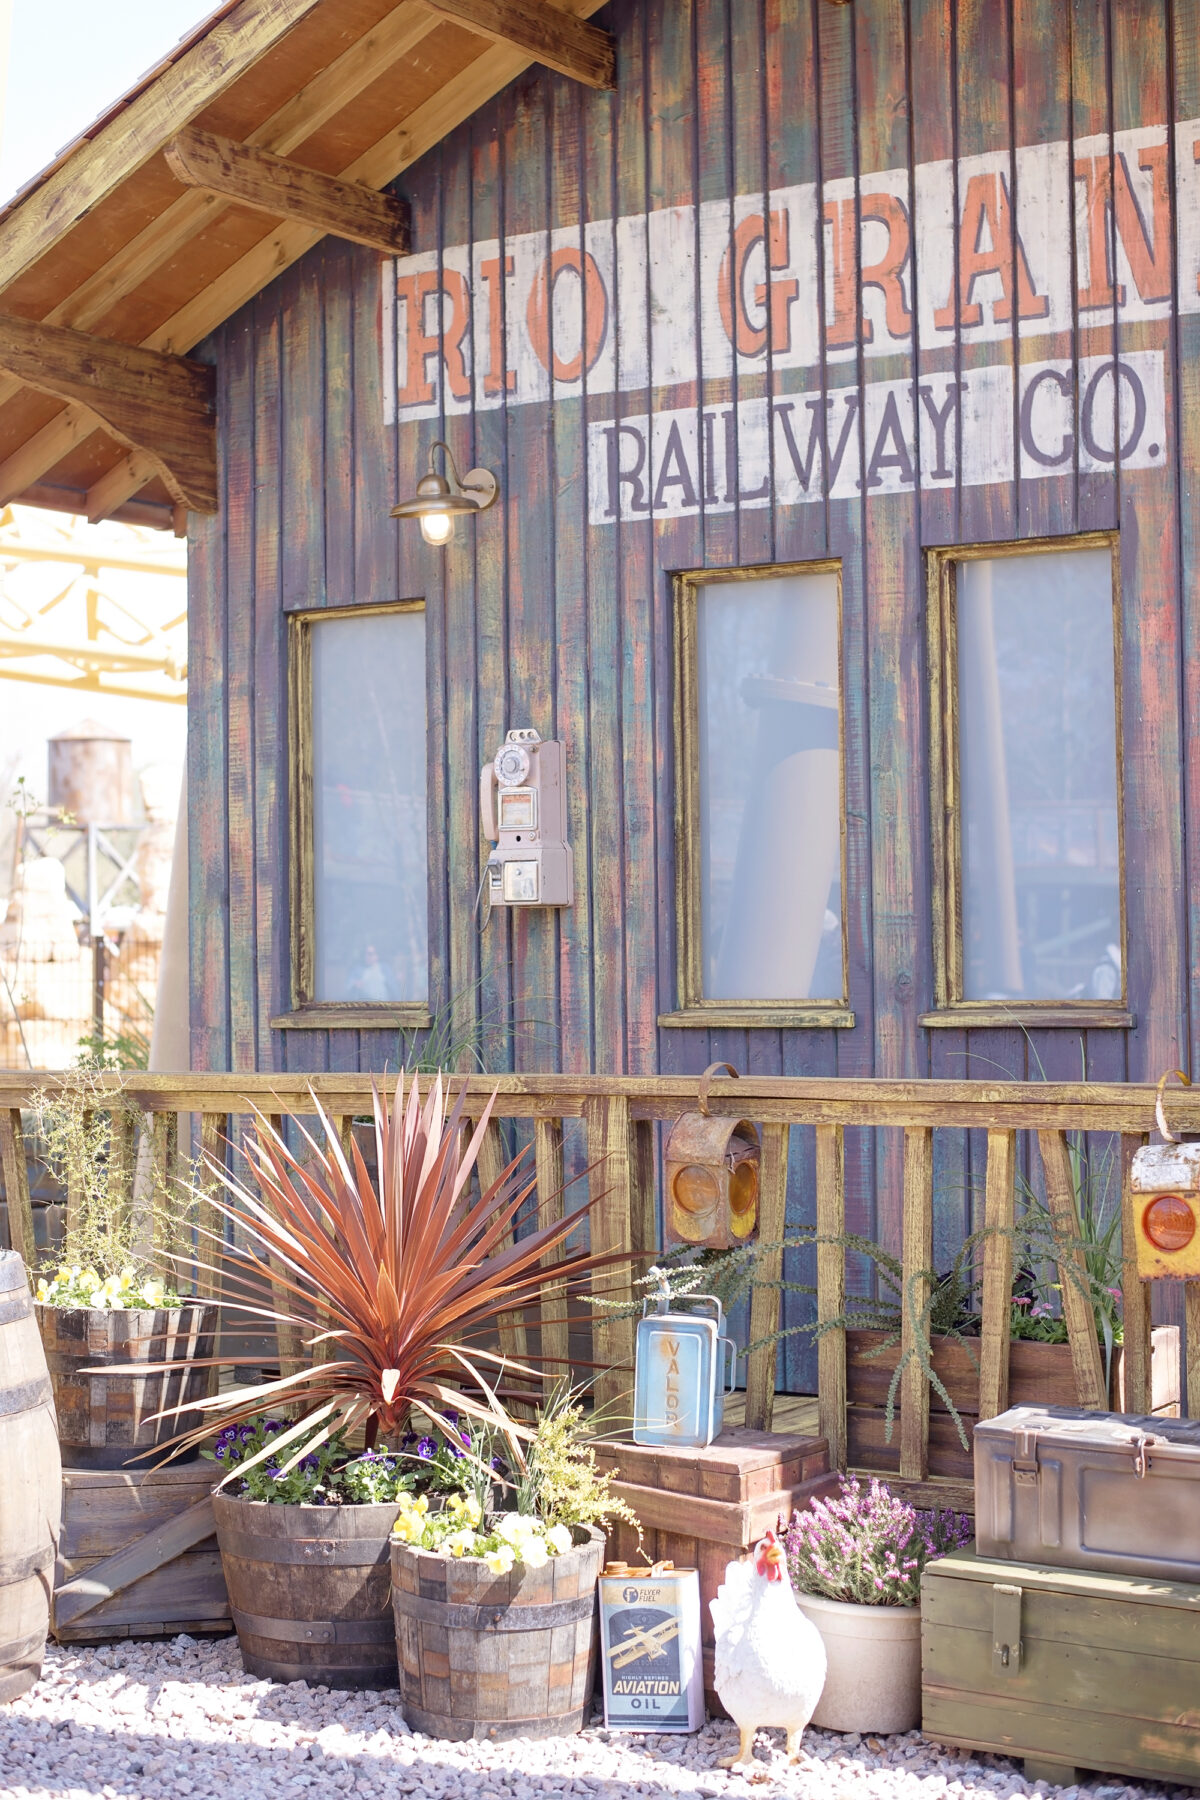 Image shows theming at Paultons Park Tornado Springs area. An american wooden building belonging to the rio grande railway company. There is a white chicken walking on the porch, with flowers in barrels and cans of aviation oil littered next to ammunition cases.